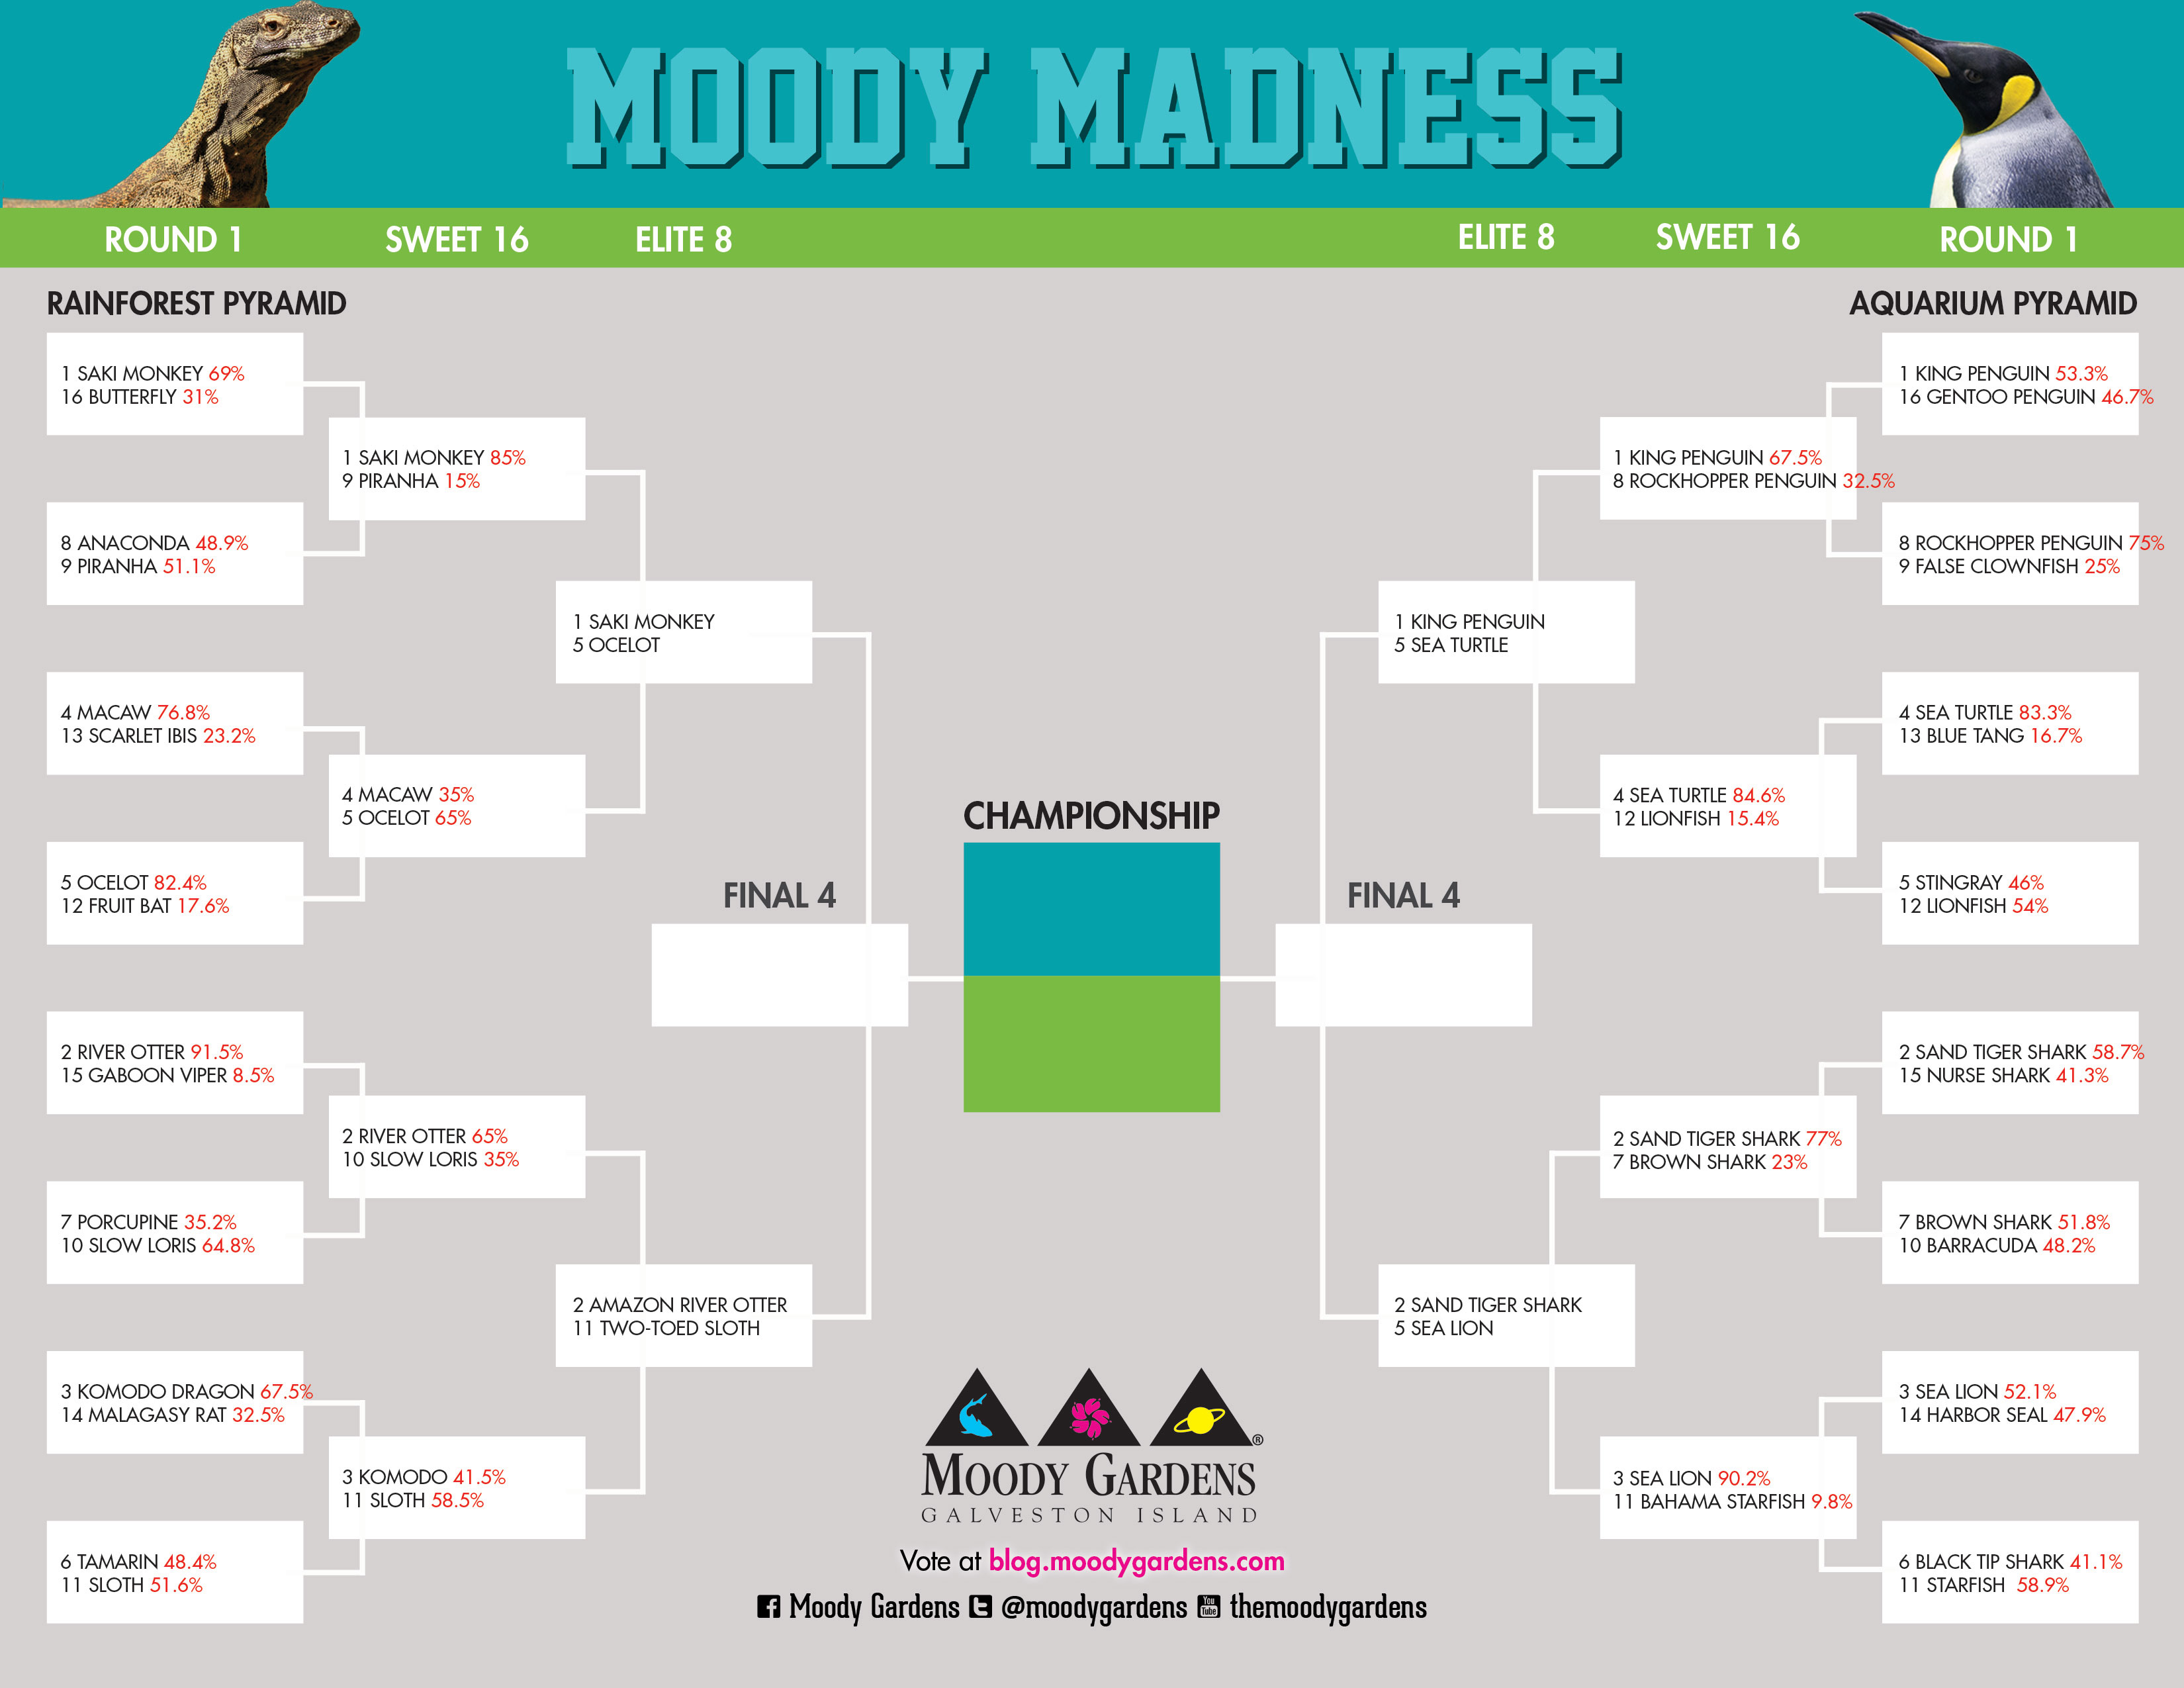 Moody Madness: Elite 8